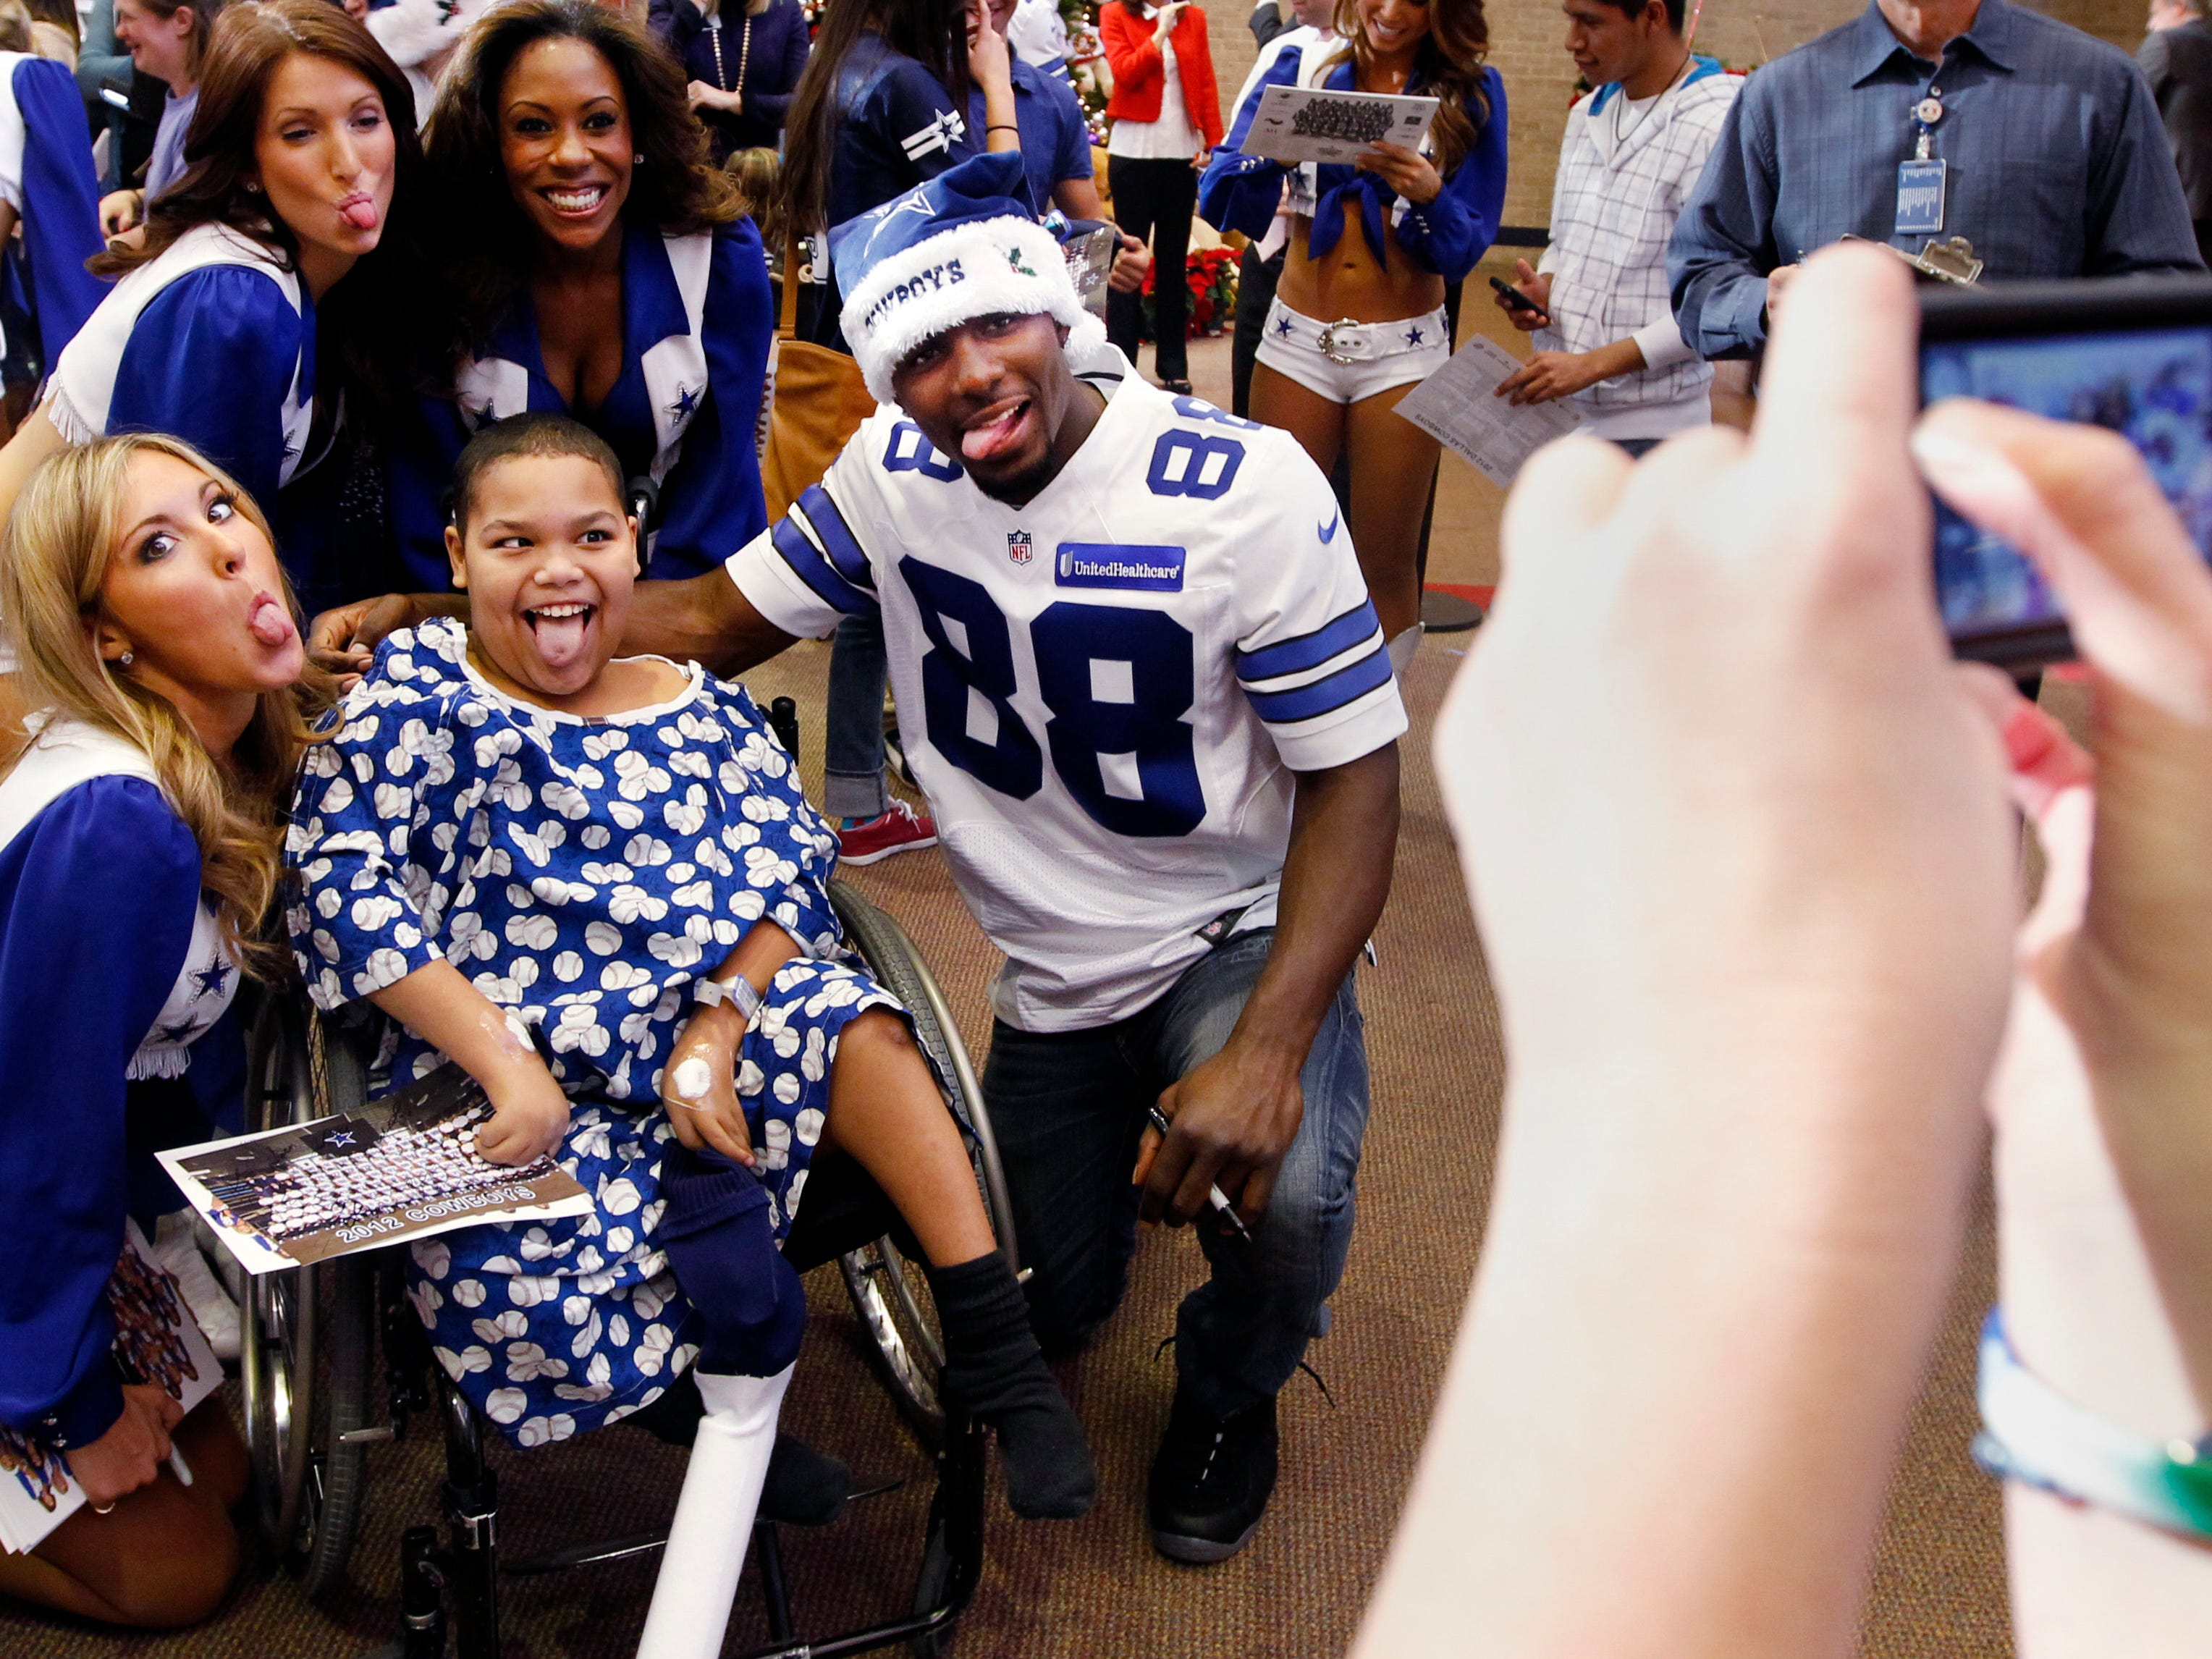 Myron Miller, 11, of Fort Worth makes a funny face while posing with Dez Bryant and Dallas Cowboys cheerleaders during their annual visit at the Texas Scottish Rite Hospital for Children in 2012.